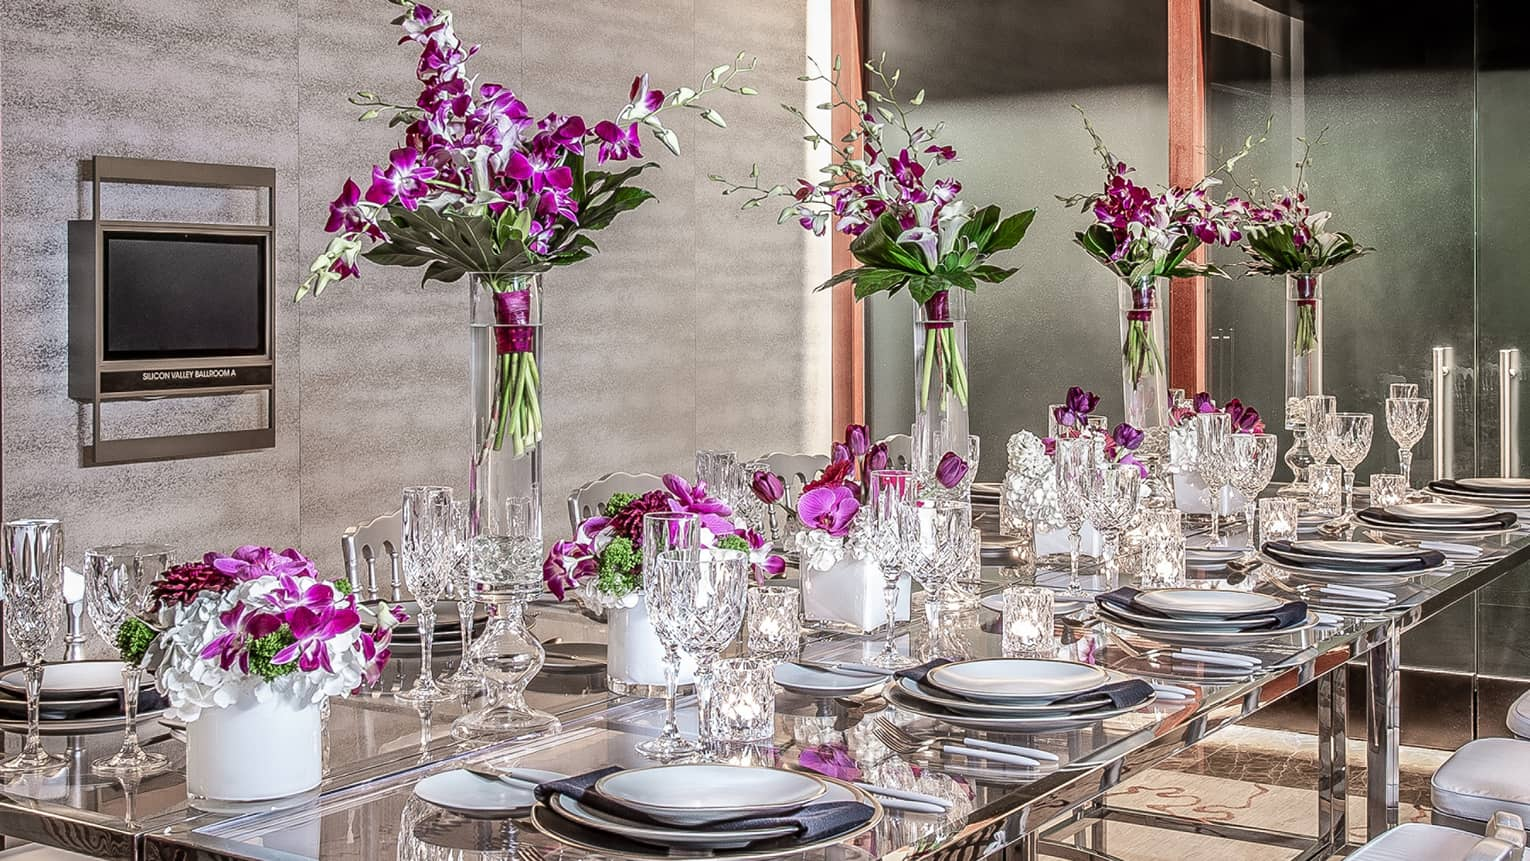 Purple flowers, goblets and place-settings decorate a glass able in an event space